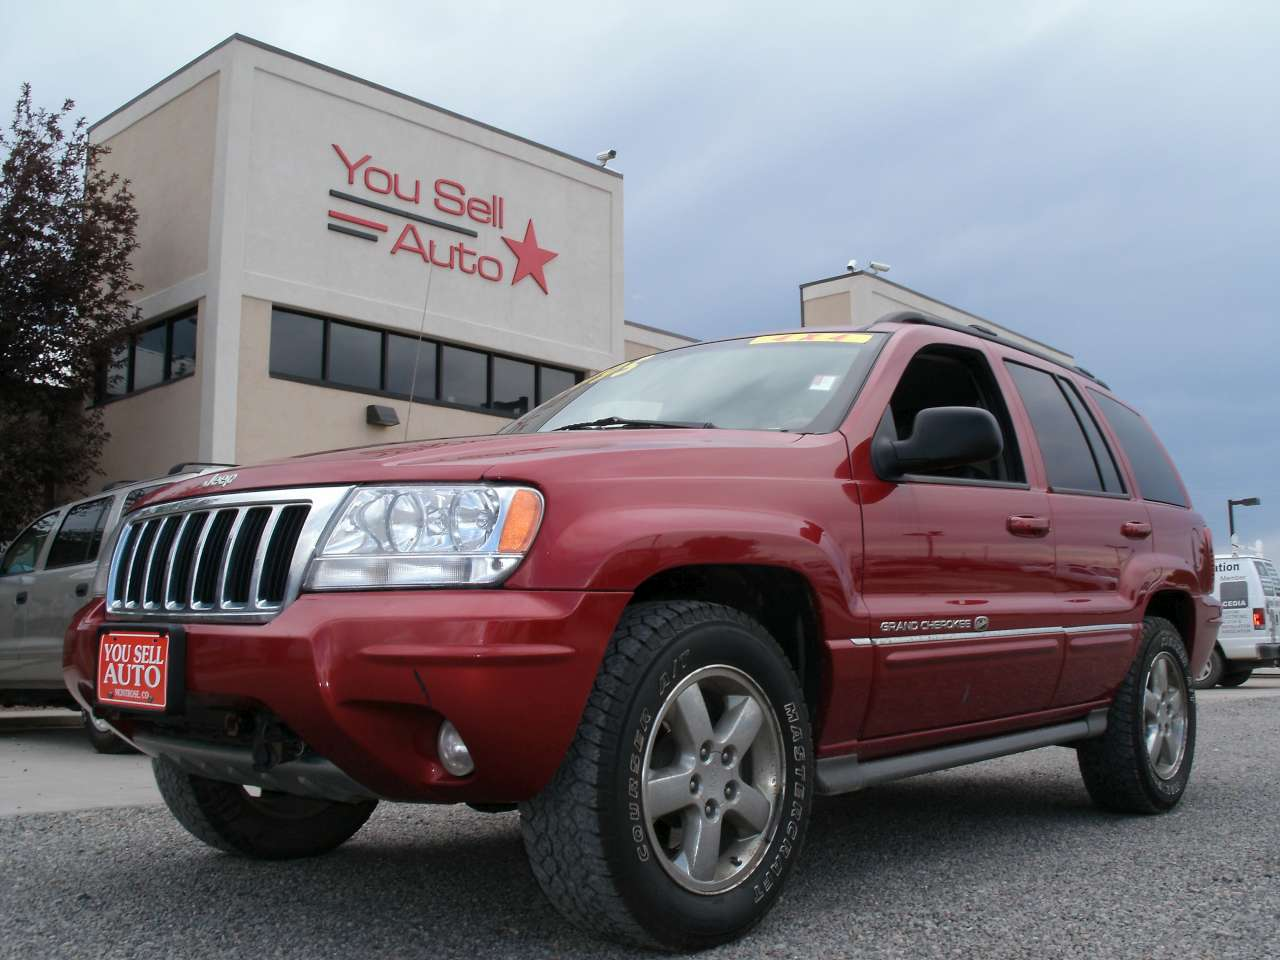 2004 jeep grand cherokee overland 4x4 sold you sell auto. Black Bedroom Furniture Sets. Home Design Ideas